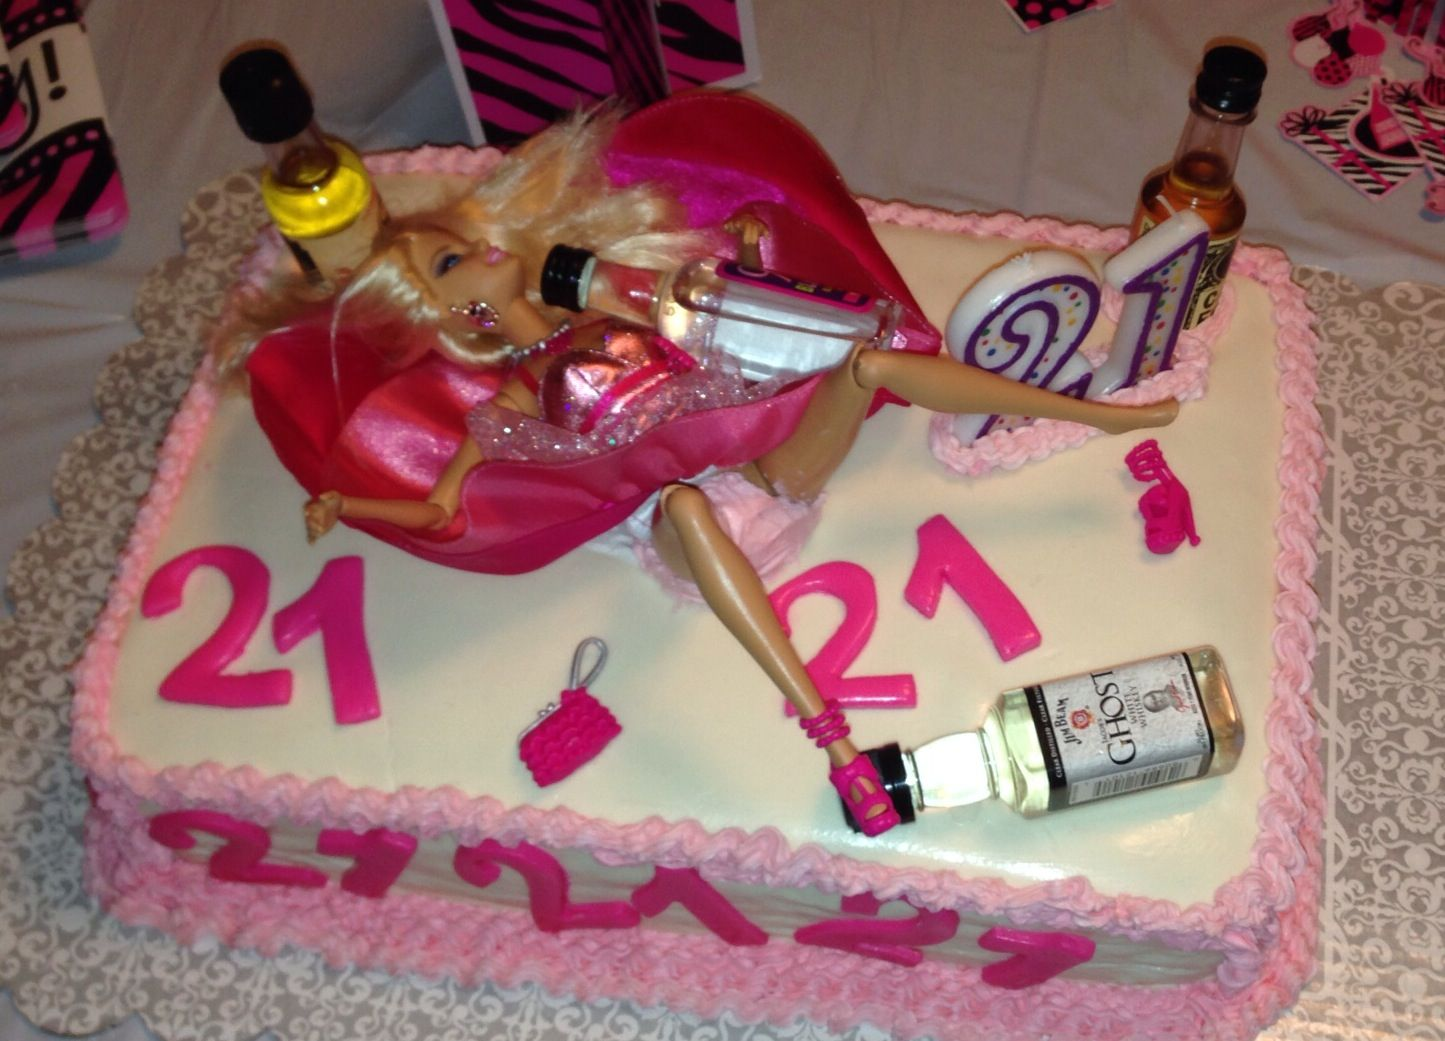 Drunk Barbie Cake Images : Drunk Barbie cake Cake s by Pam Pinterest Drunk ...